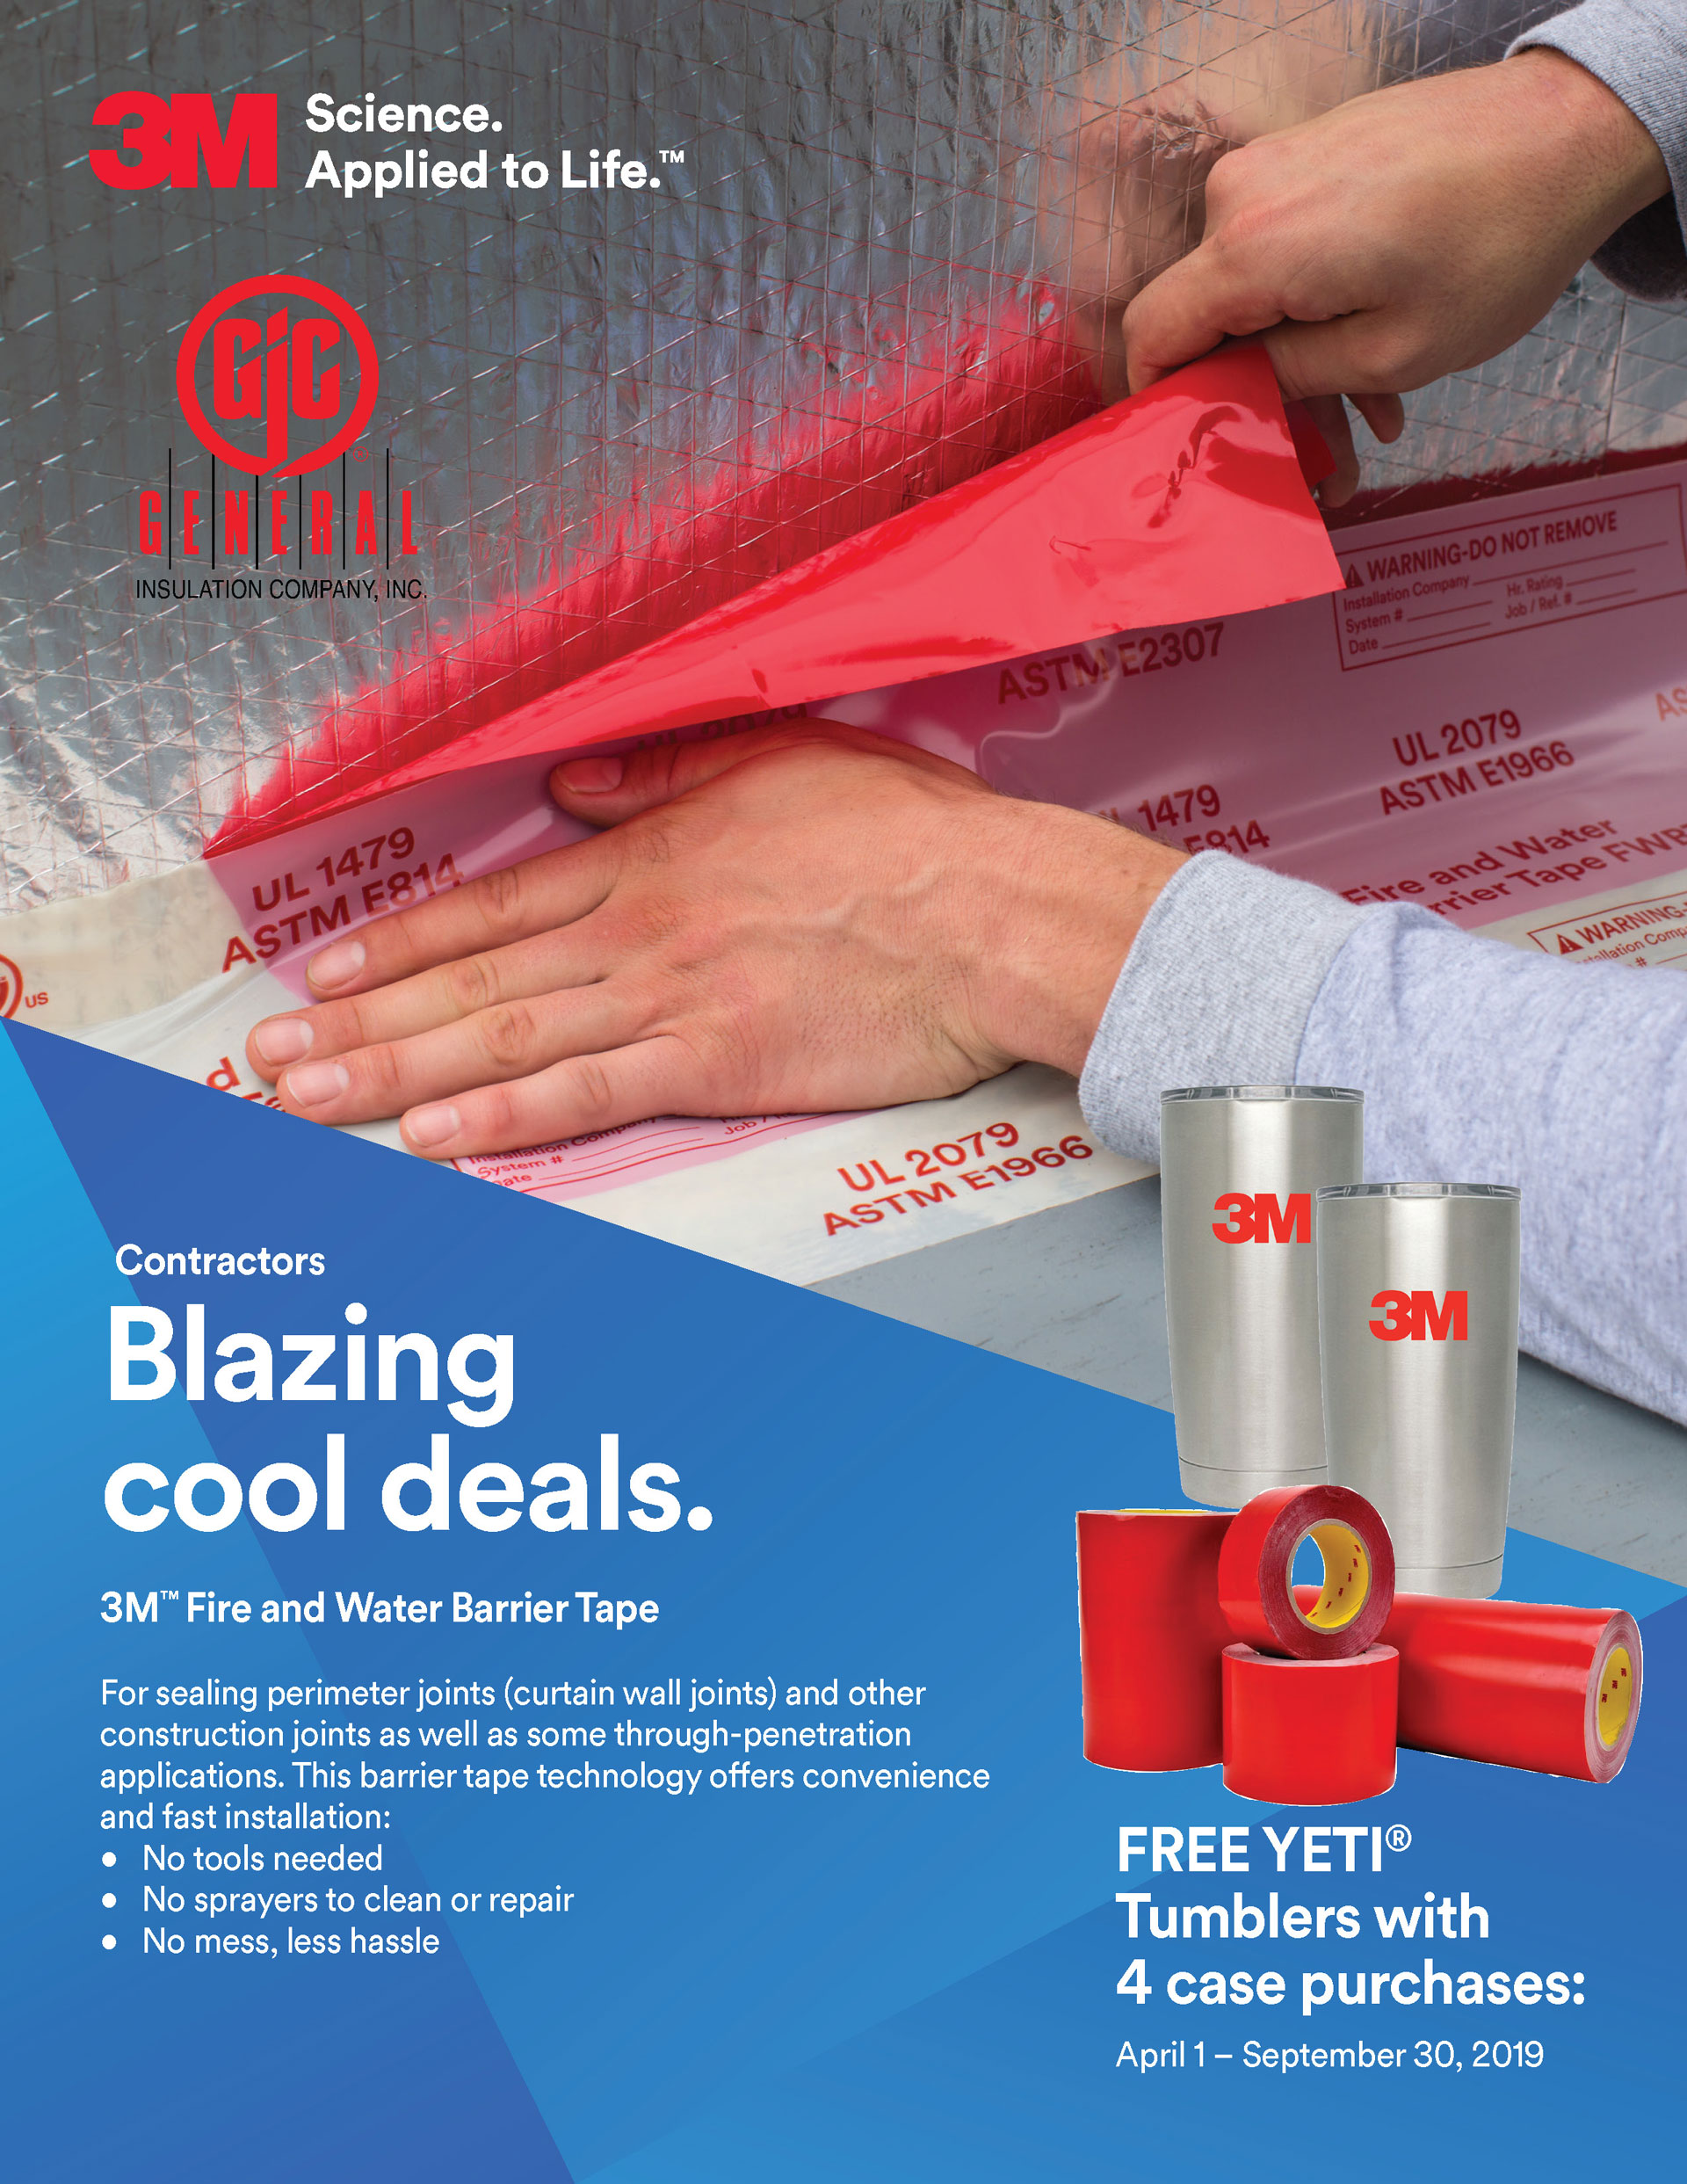 BLAZING COOL DEALS - 3M FIRE AND WATER BARRIER TAPE